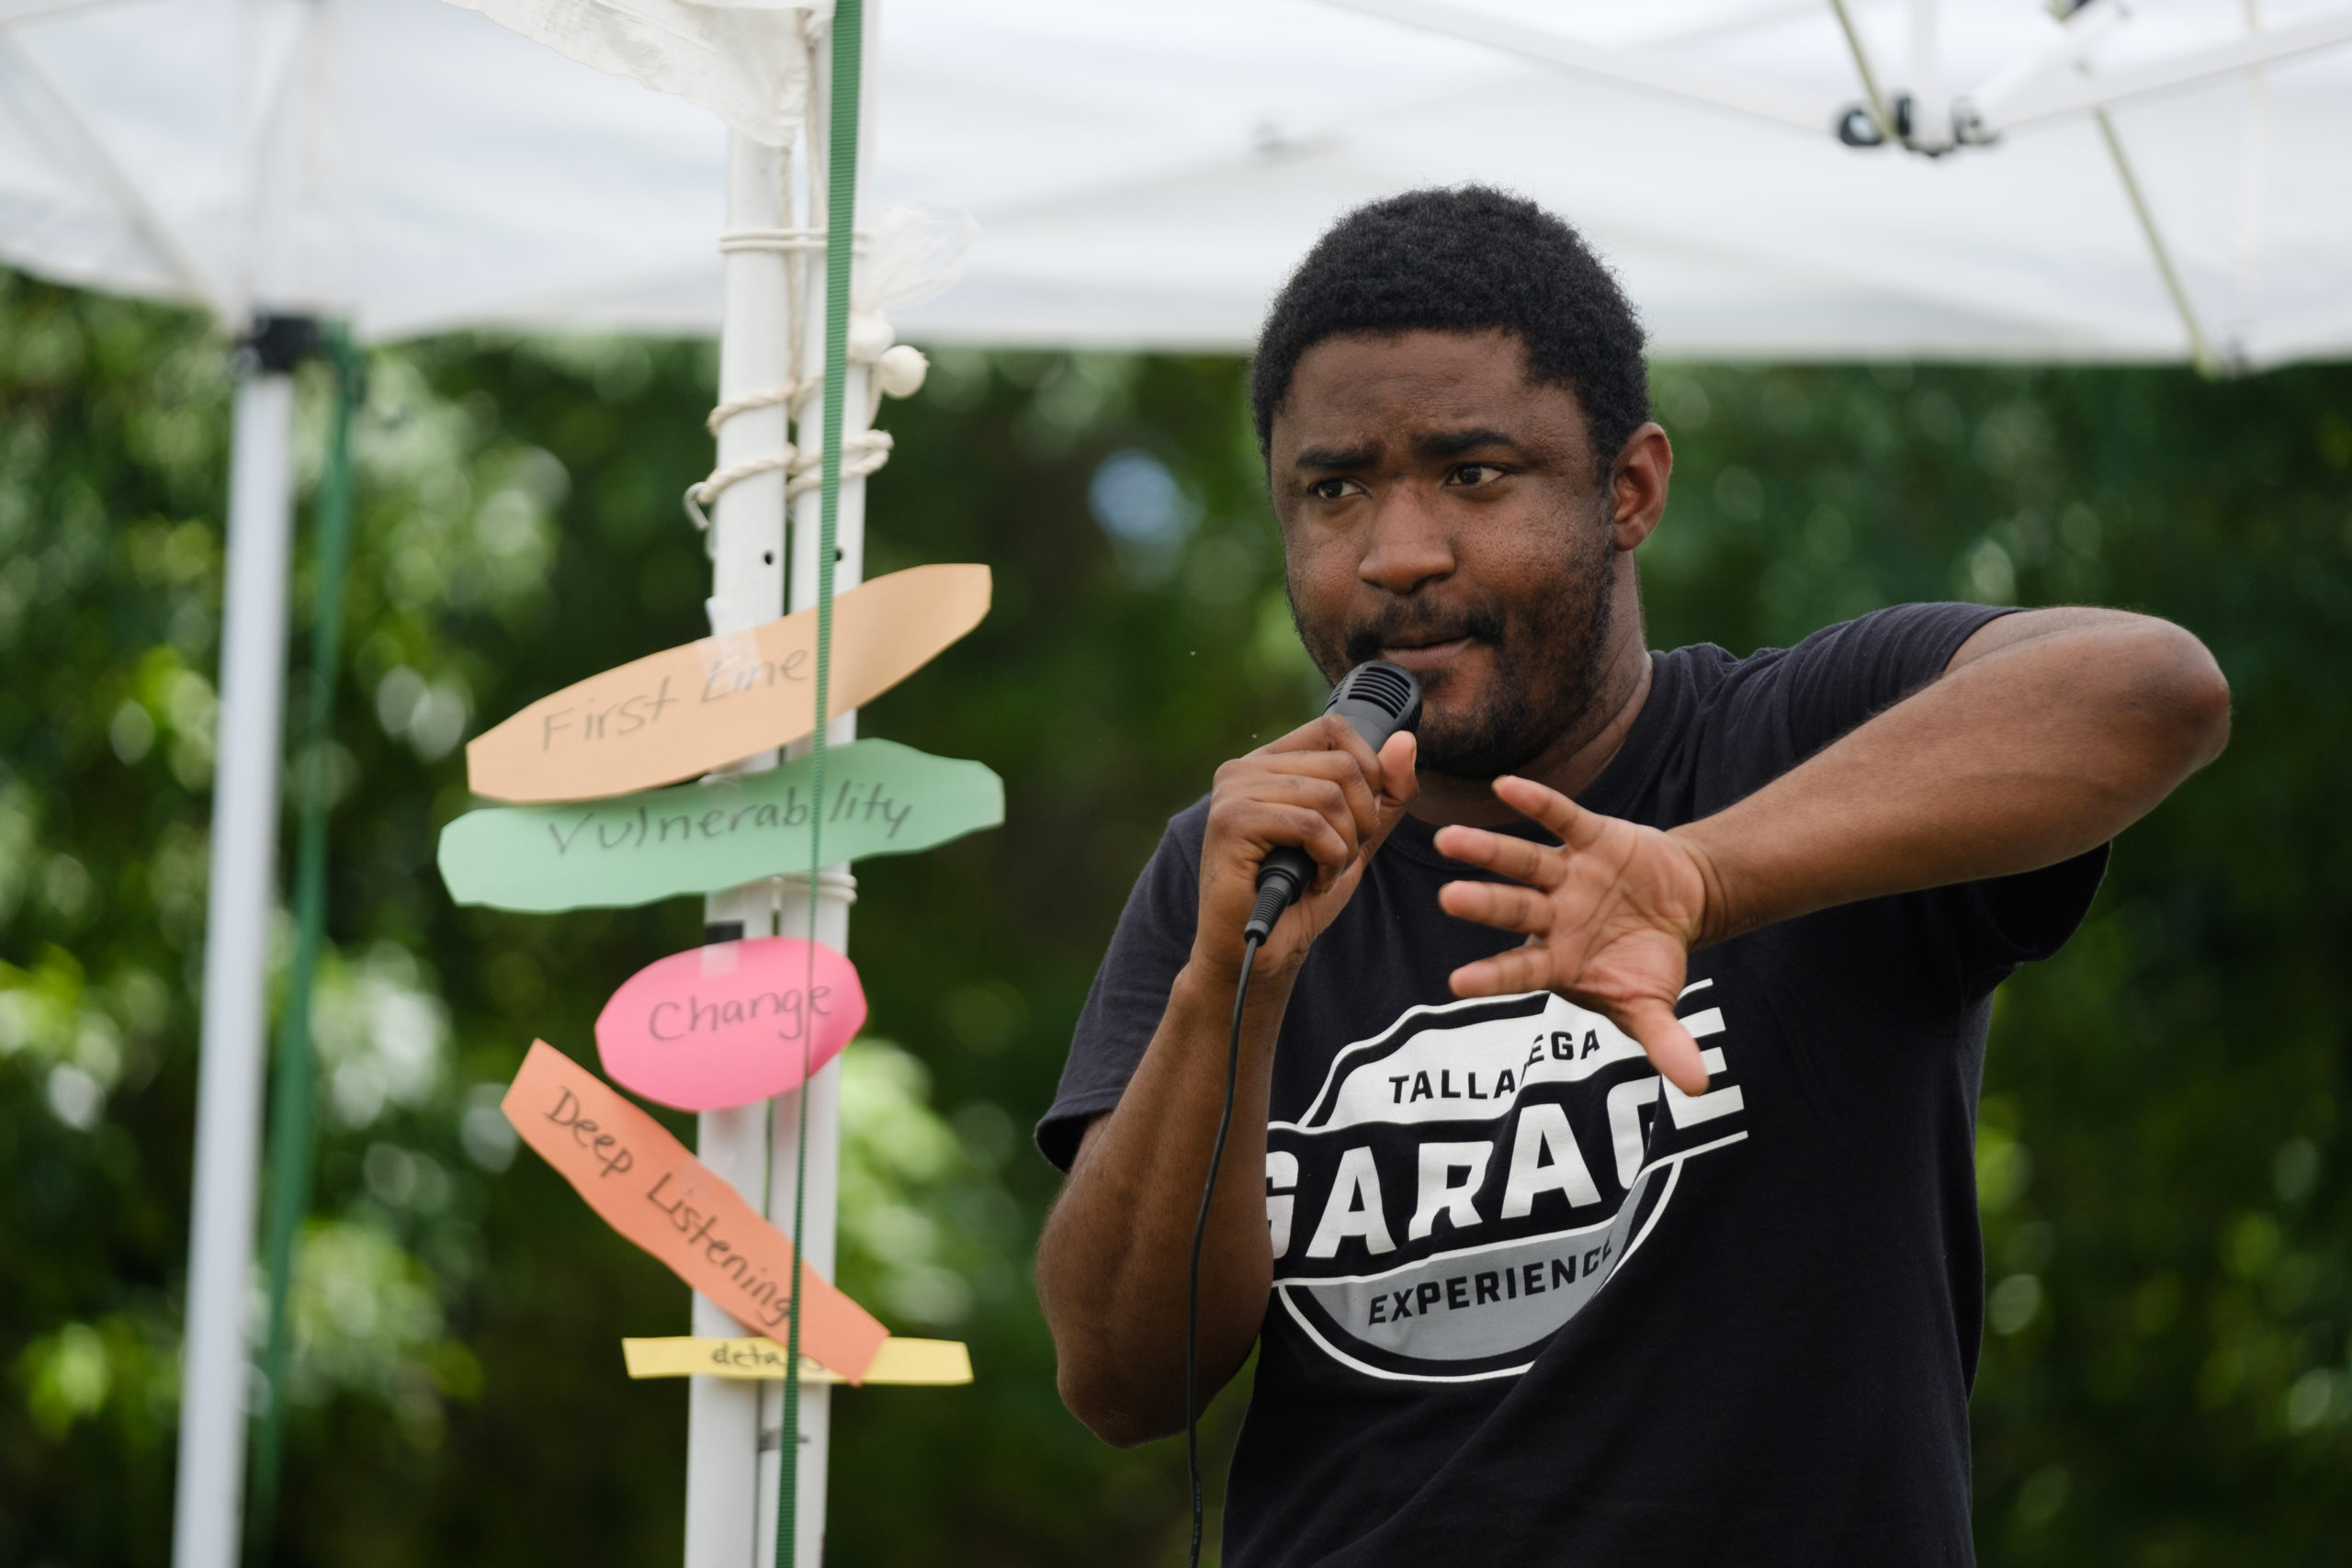 a young black man speaks into a microphone while gesturing with his hands